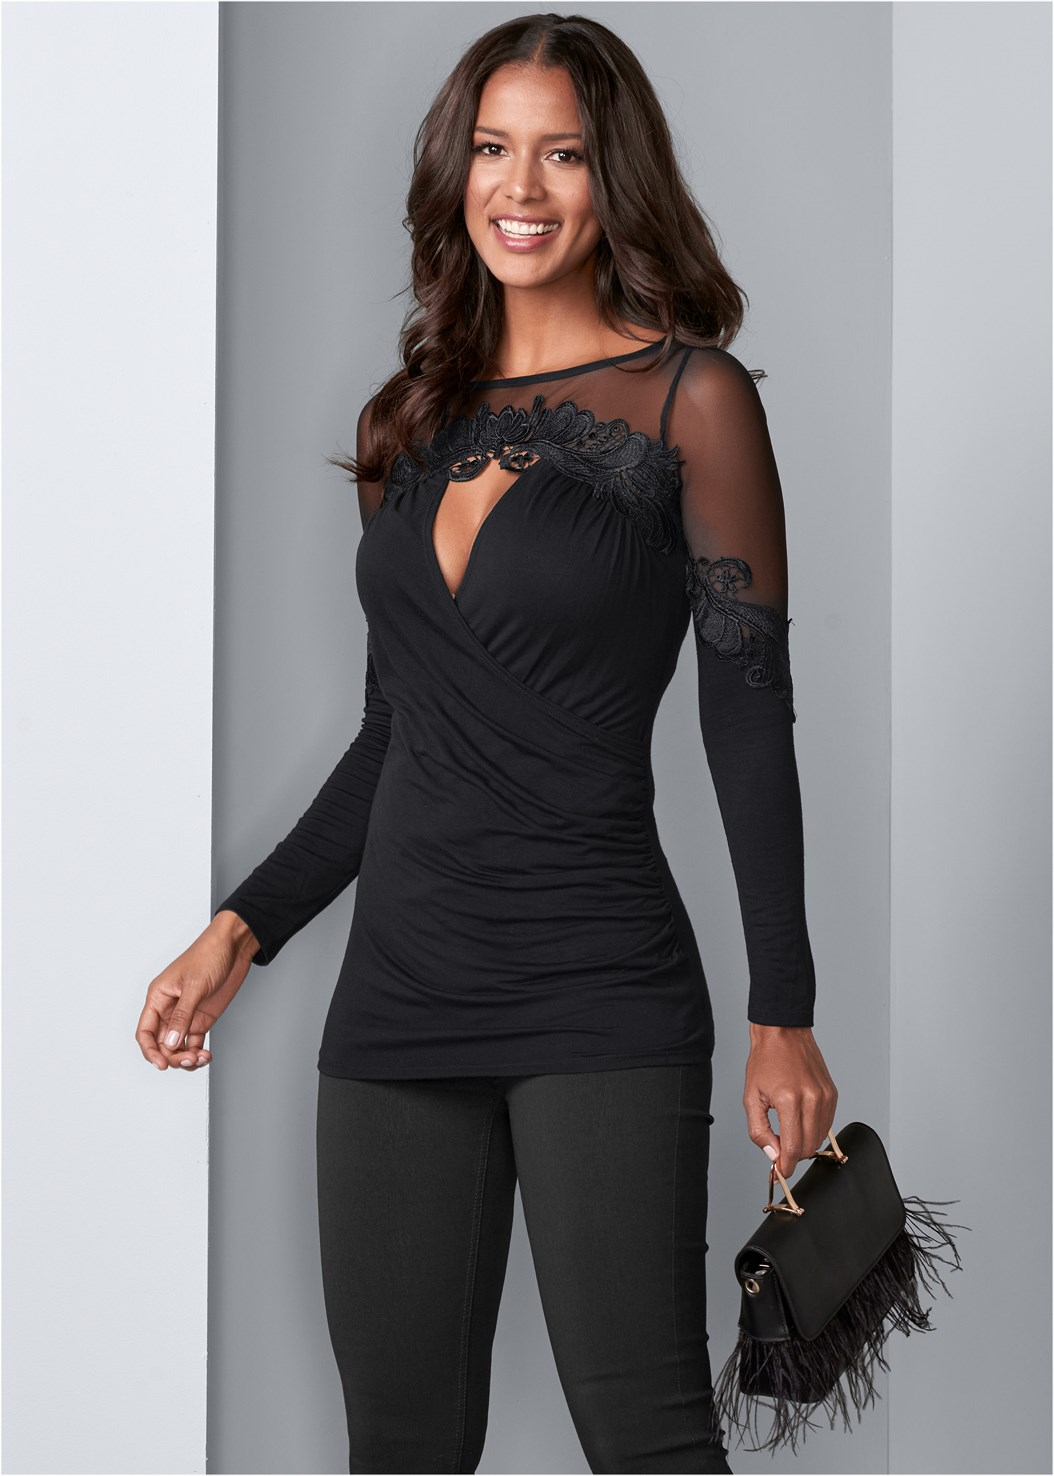 Mesh Detail Surplice Top,Mid Rise Slimming Stretch Jeggings,Cupid Backless U Plunge Bra,Faux Feather Handbag,Fringe Scarf